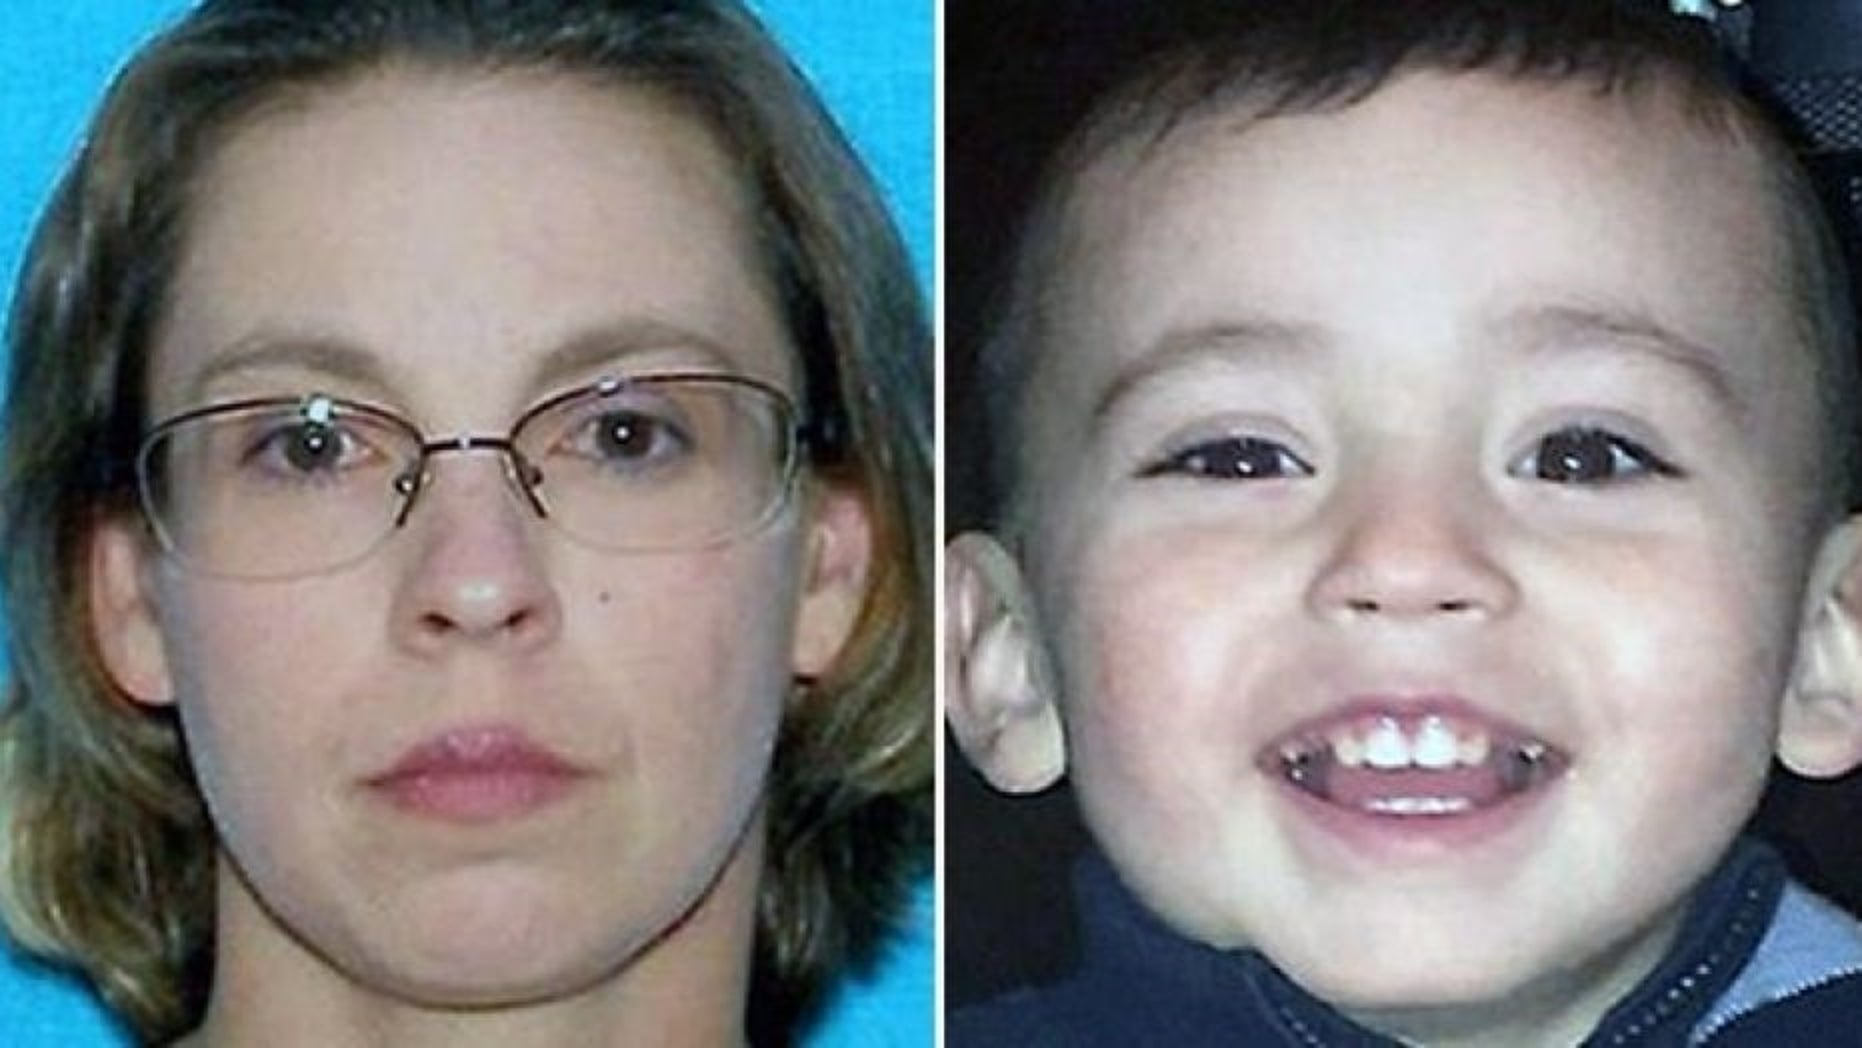 Evidence showed a Kansas toddler found encased in concrete was likely abused, police said.